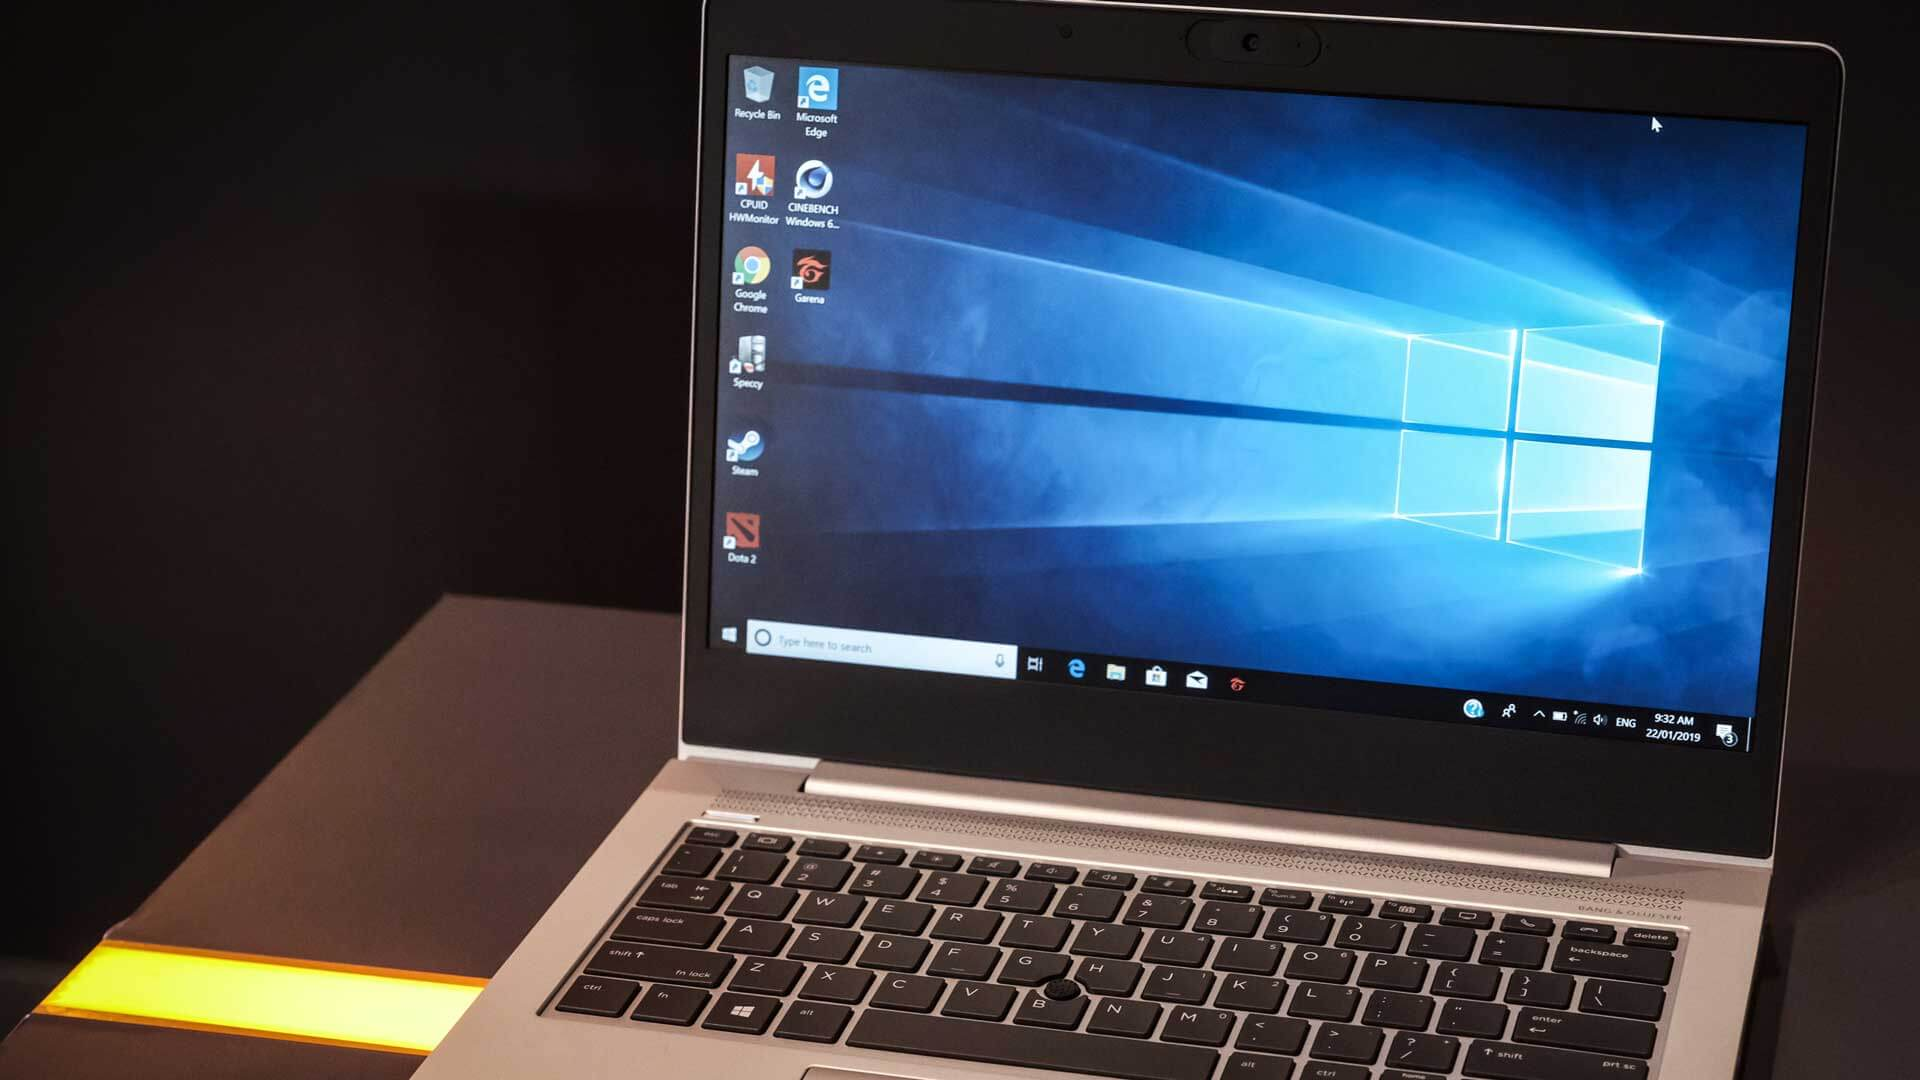 How to pin an app to the taskbar in Windows 10